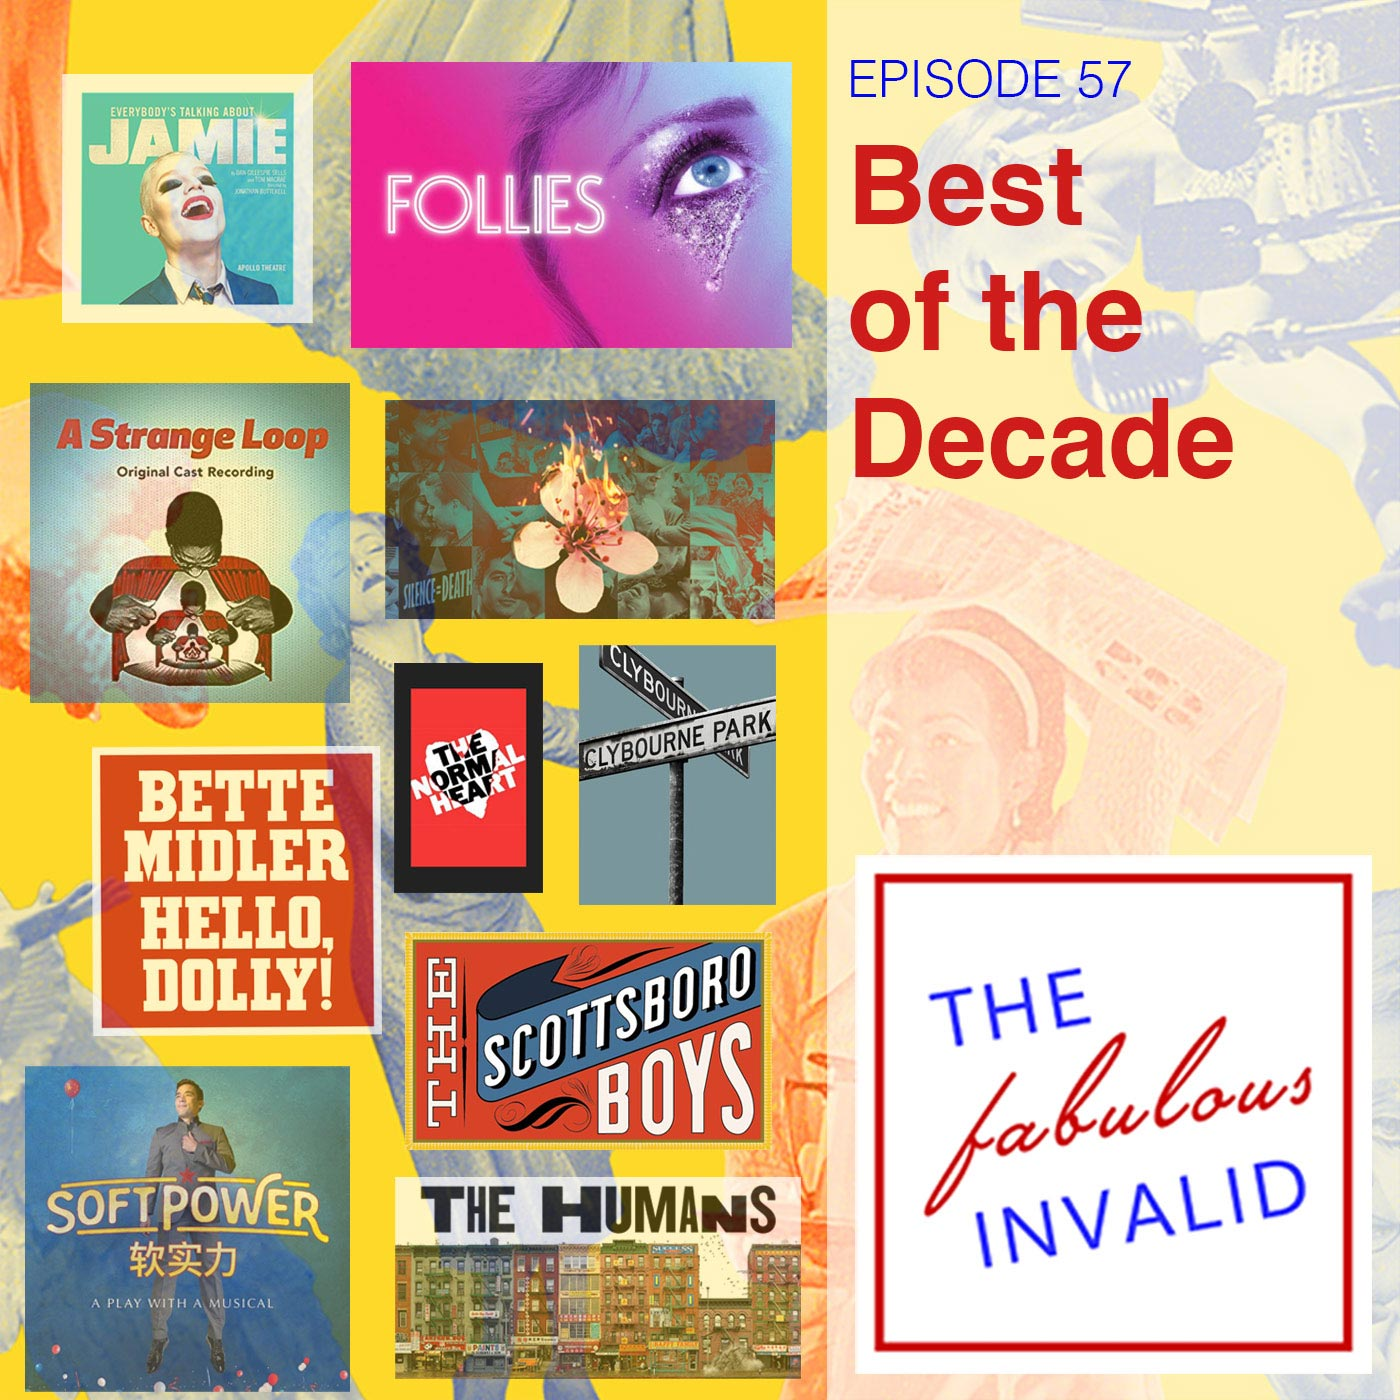 The Fabulous Invalid Episode 57 Best of The Decade